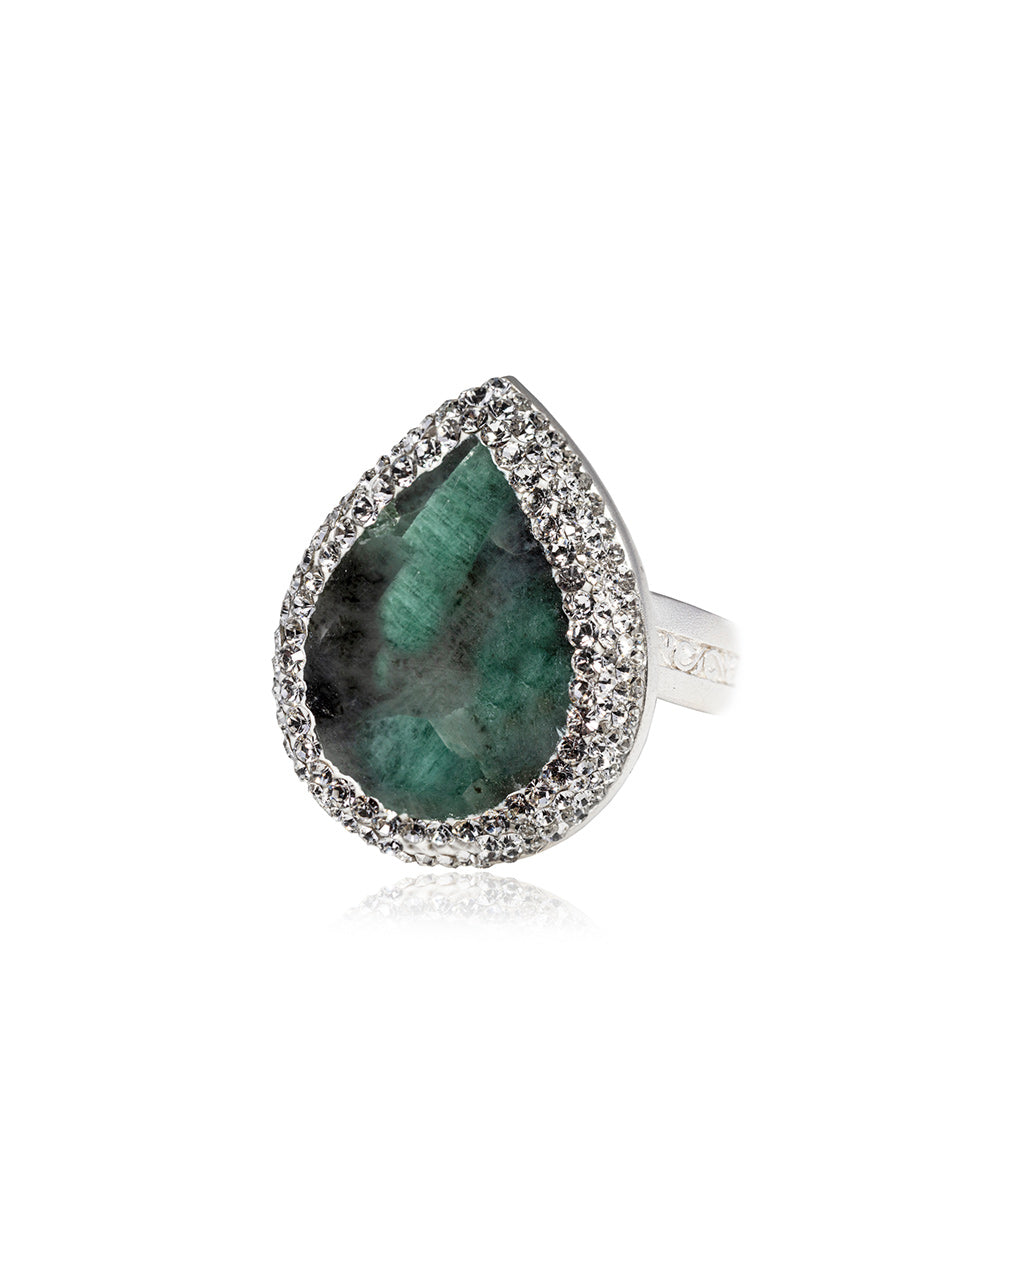 Tear Gem Signature Ring